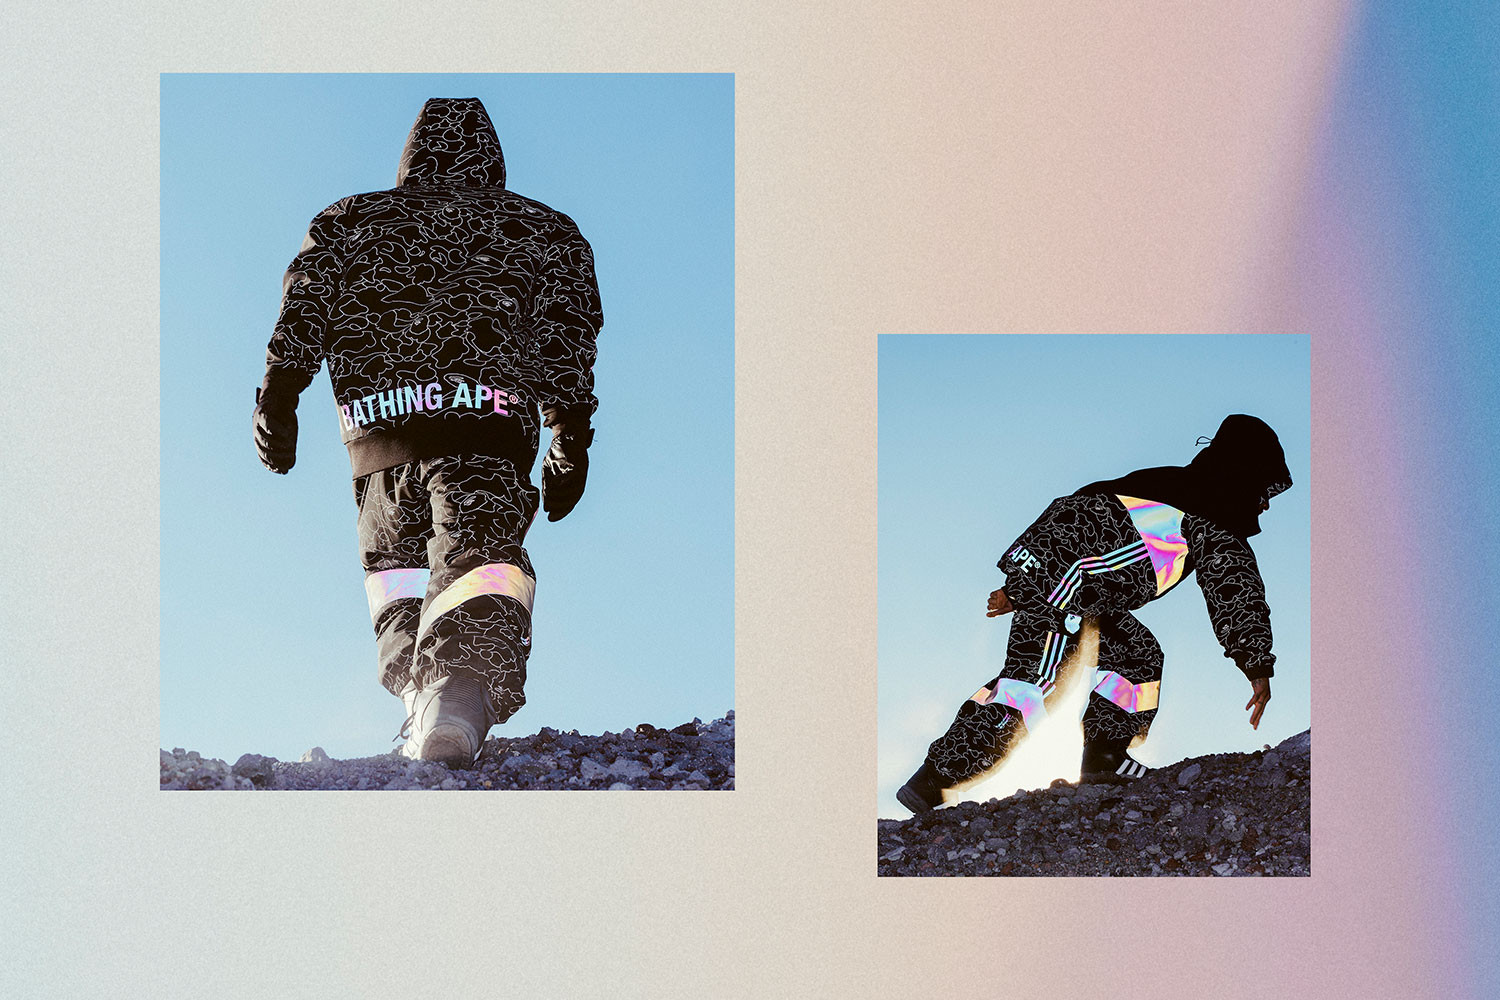 2018_10_bape-adidas-snowboarding-collaboration-release-date-021.jpg